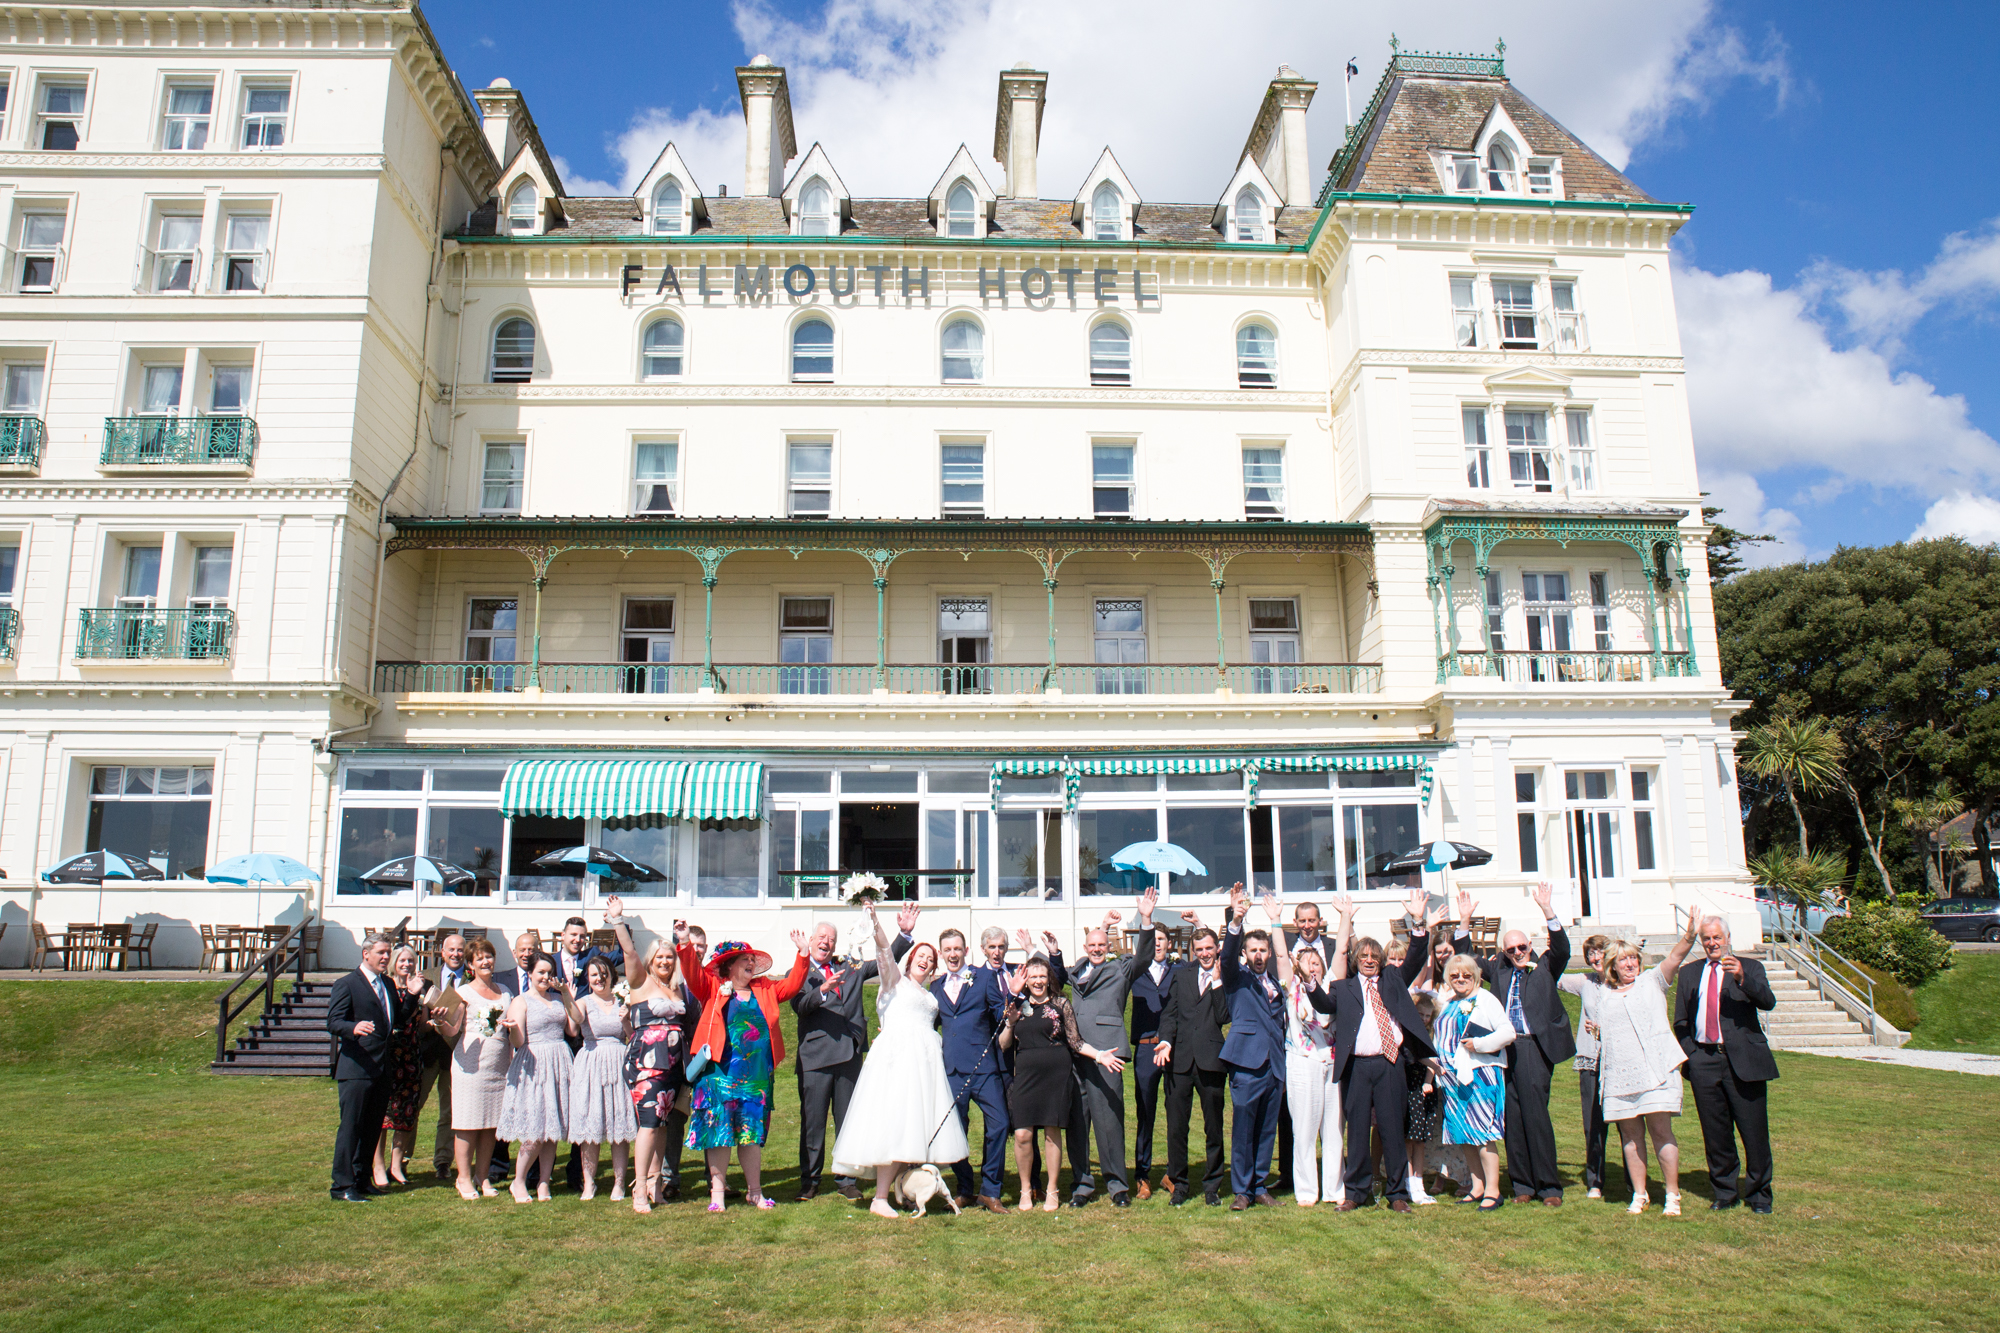 Falmouth hotel wedding by Tom Robinson photography Cornwall wedding photographer